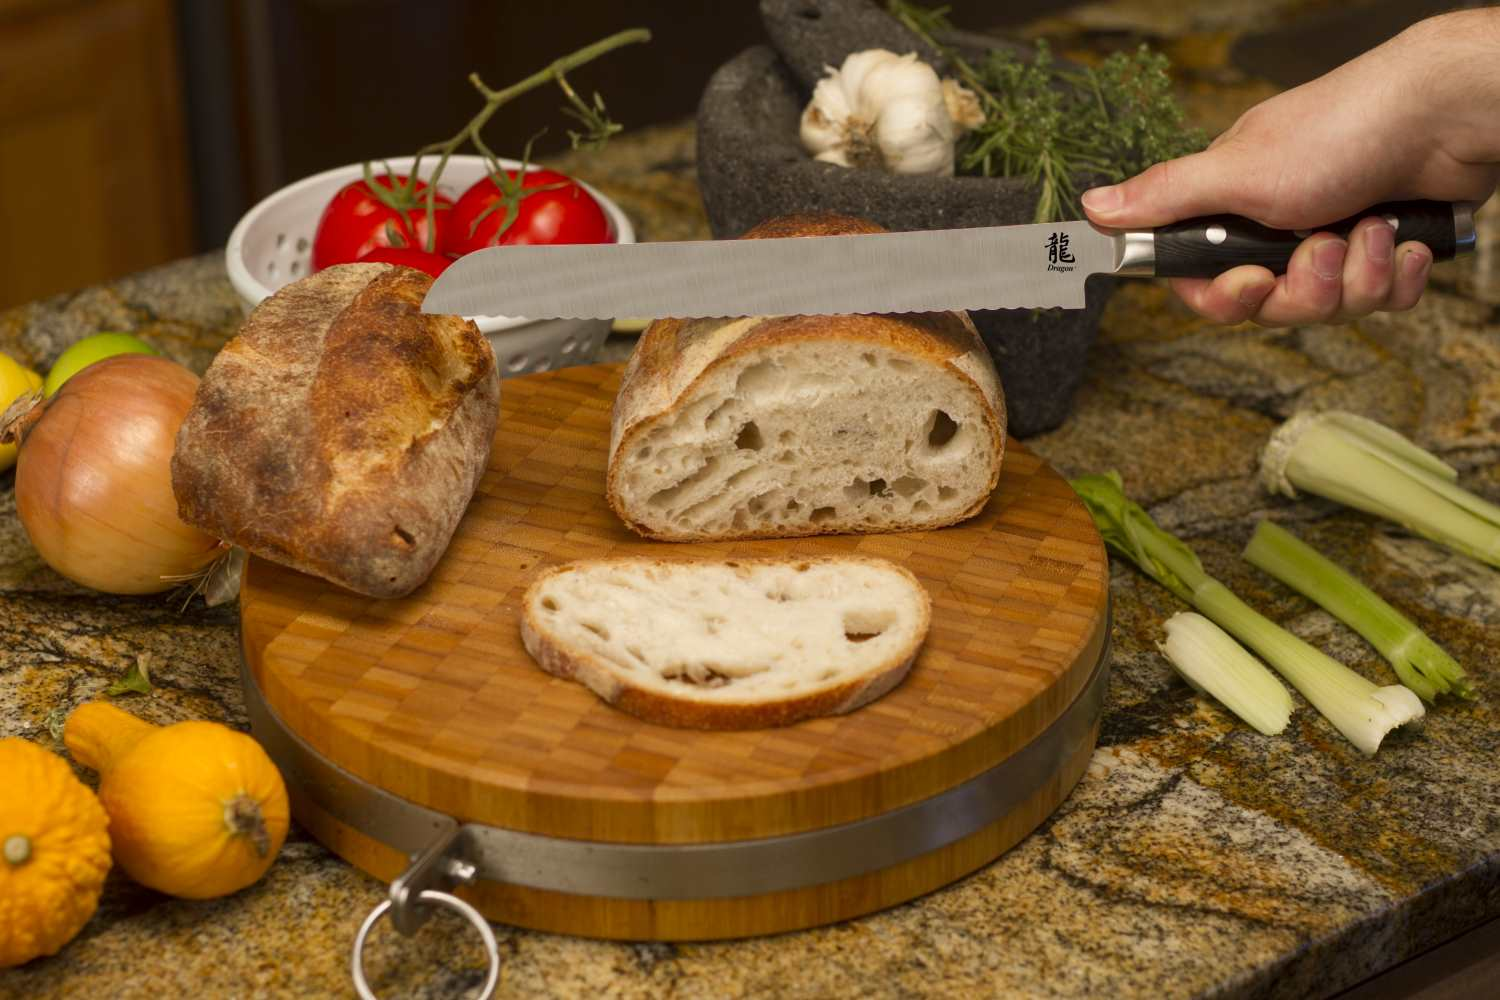 Dragon 9 Inch Bread Knife with Cutting Board Lifestyle